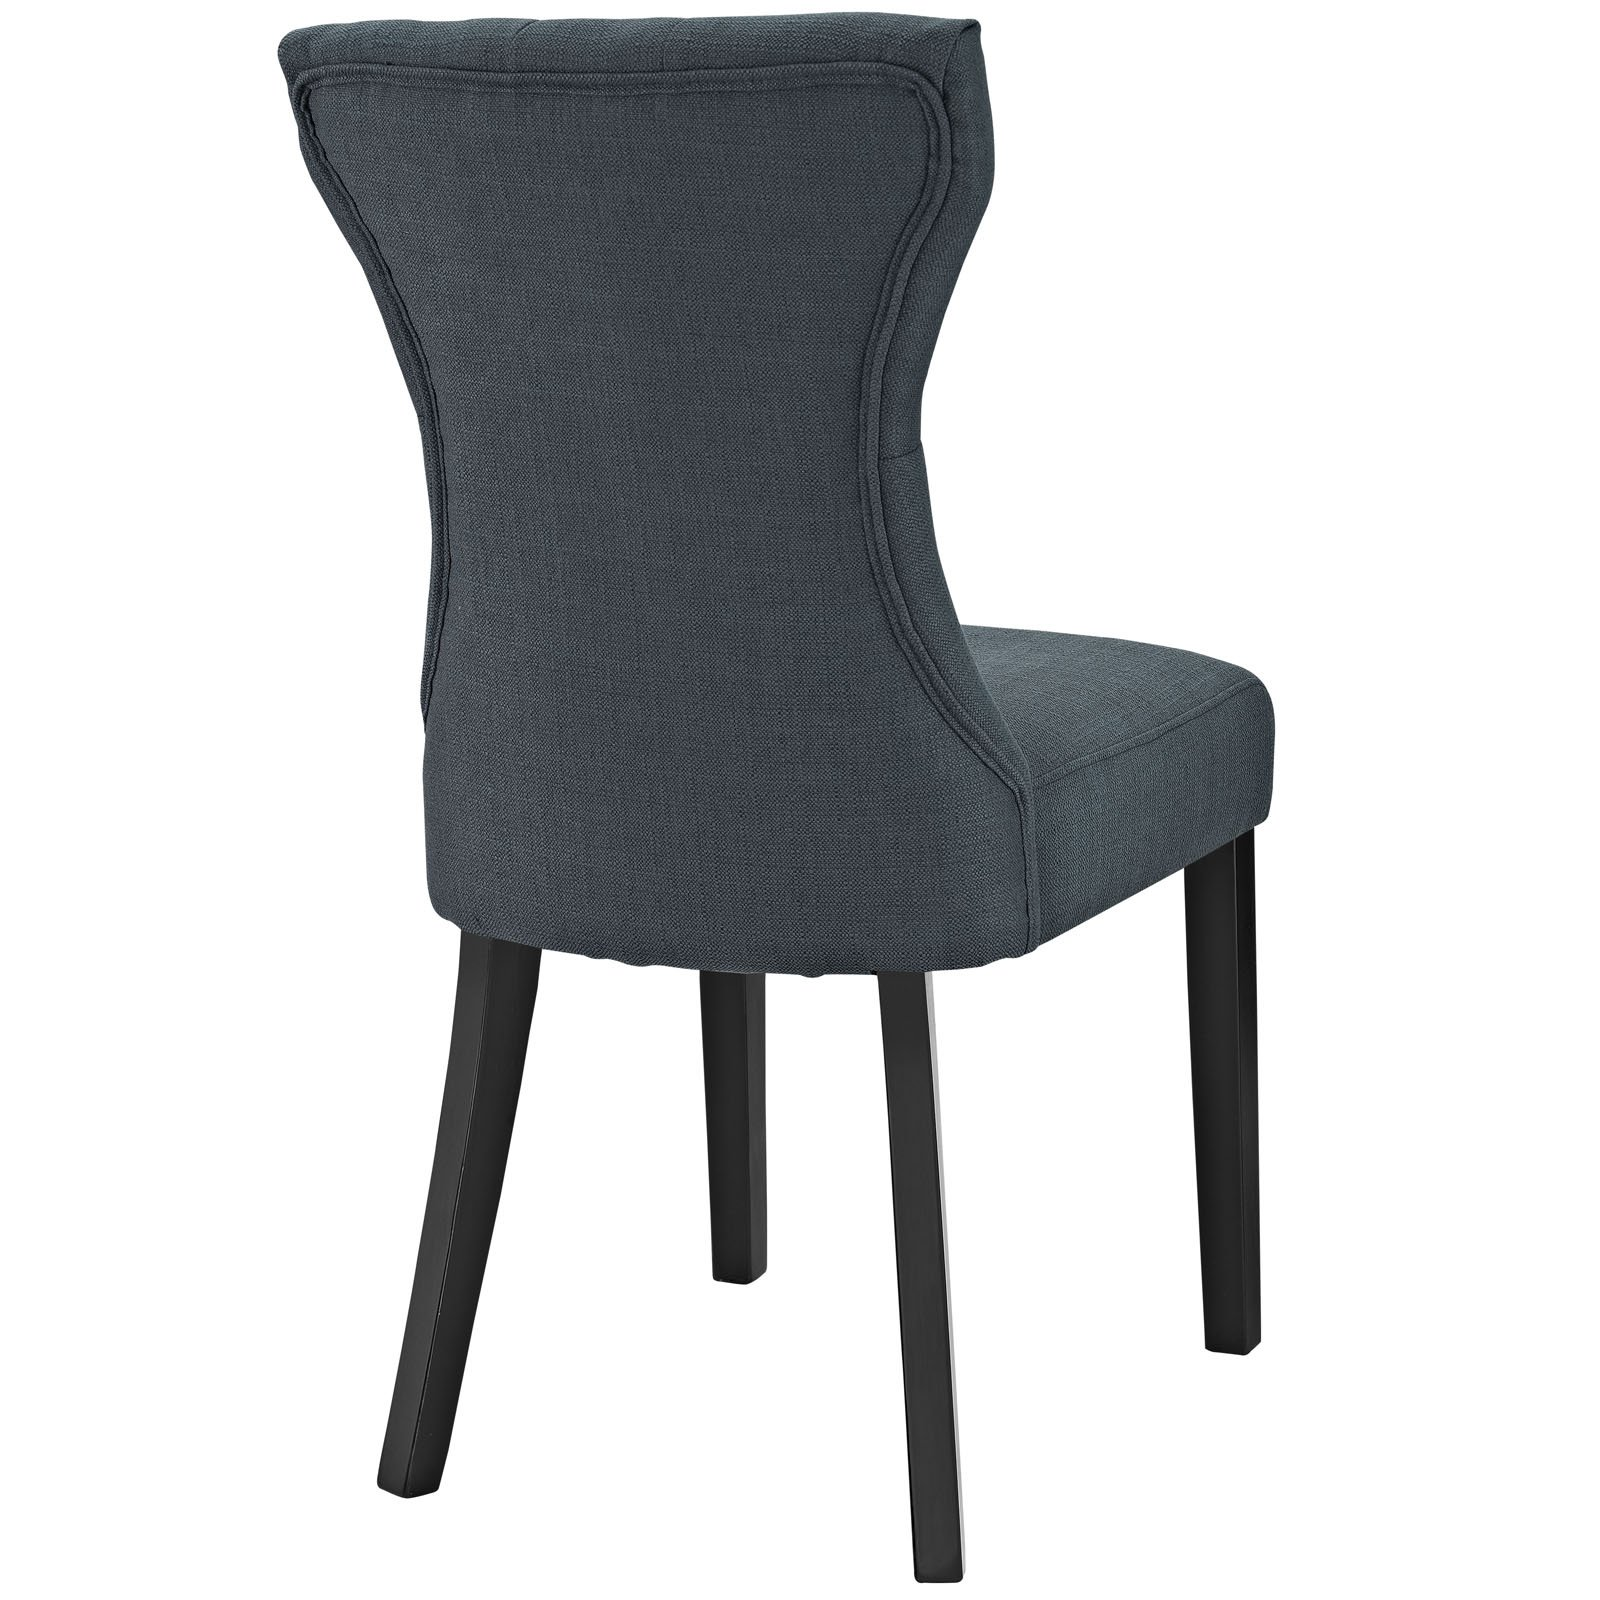 Modway Silhouette Tufted Upholstered Fabric Parsons Dining ...